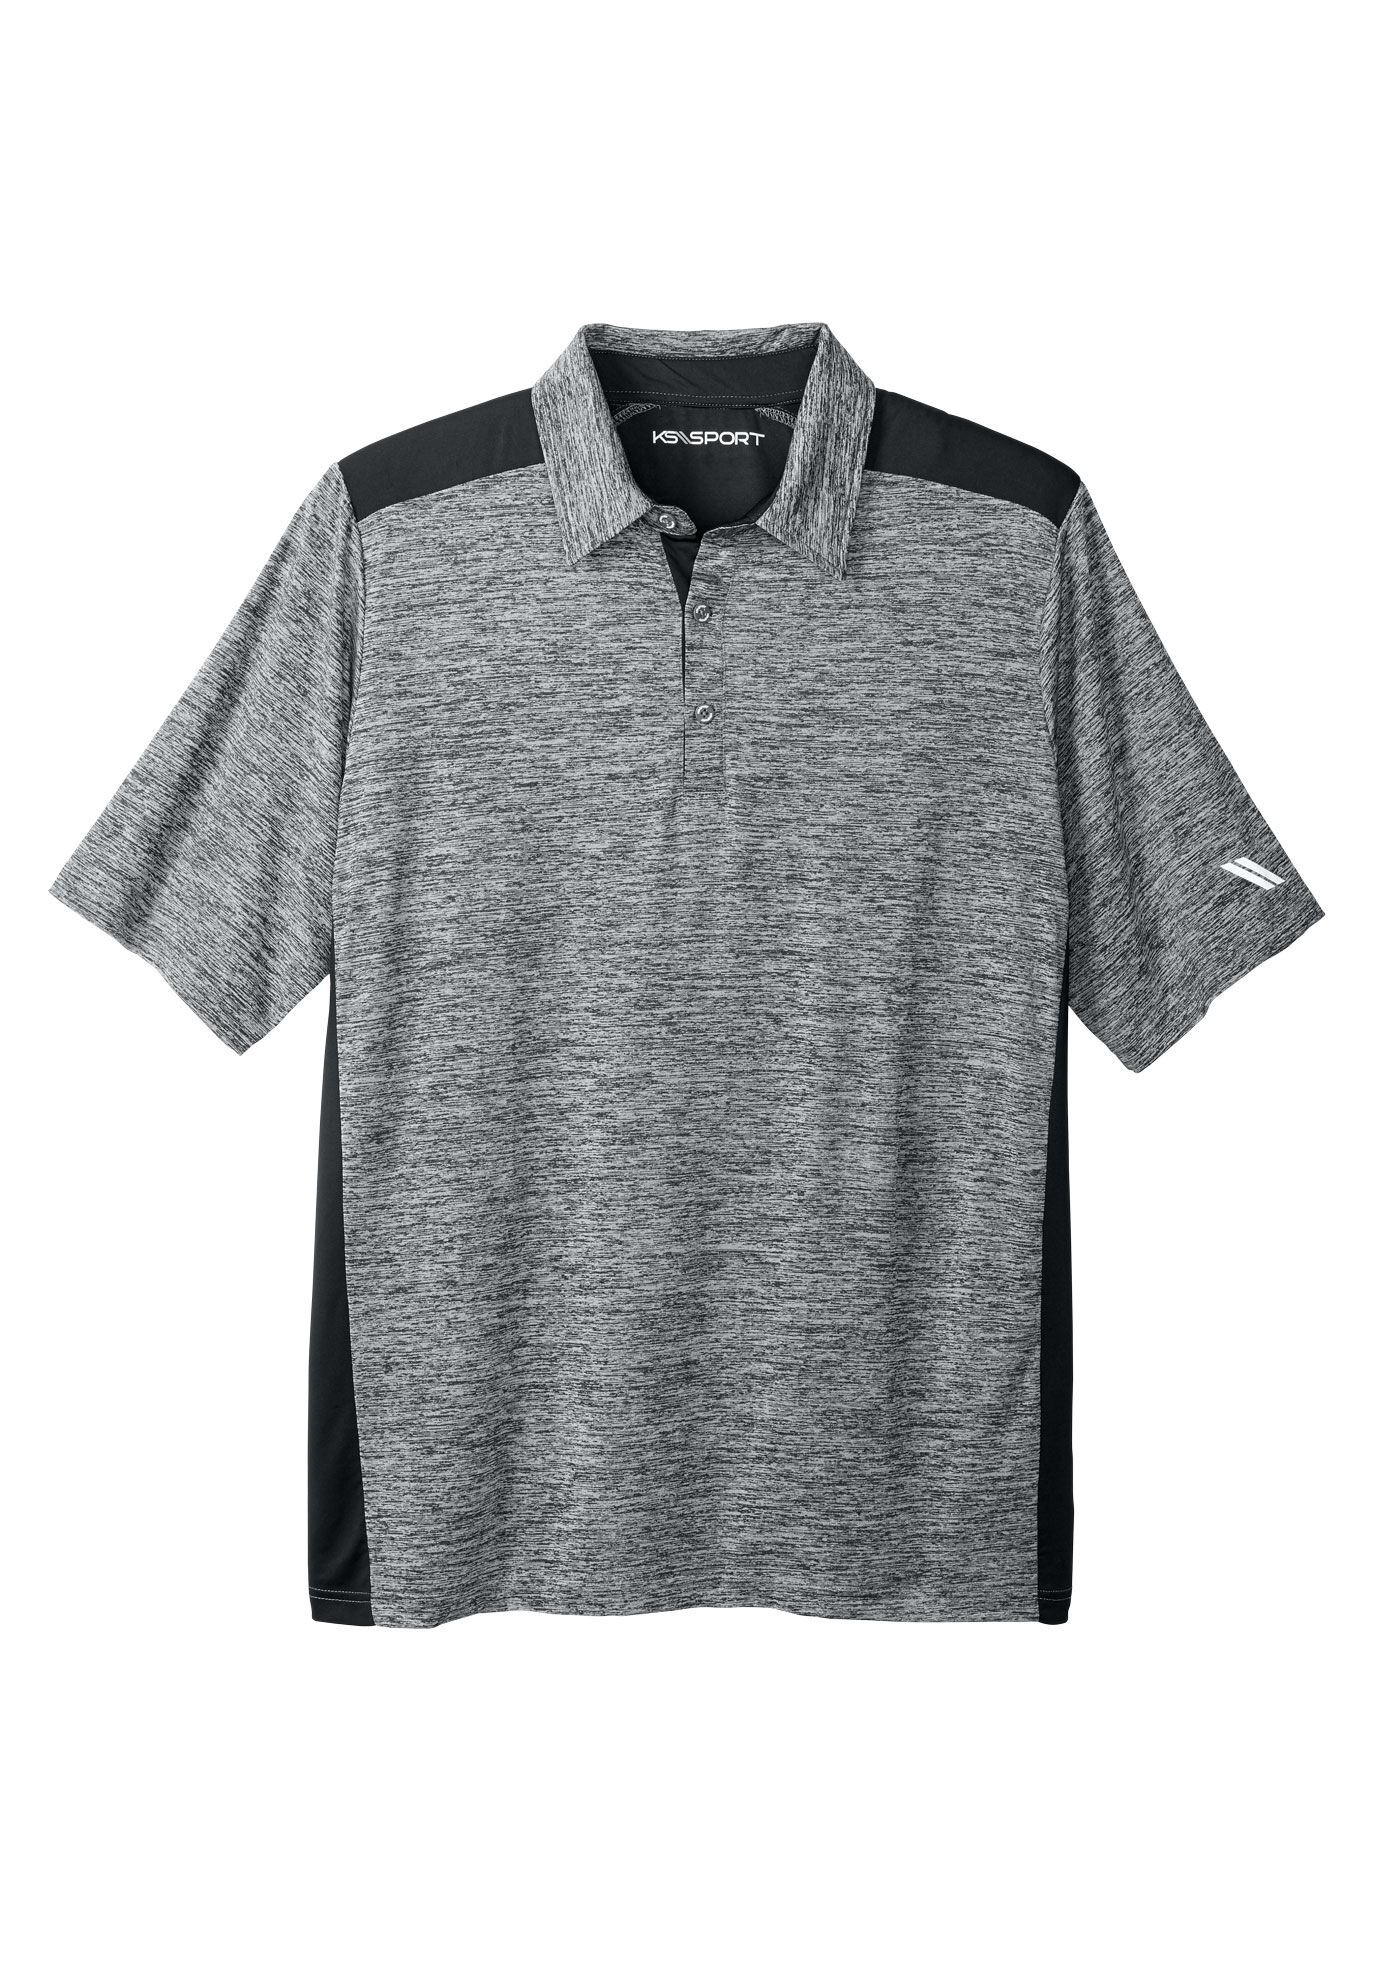 Kingsize Sport Collection Mens Big /& Tall Tech Polo